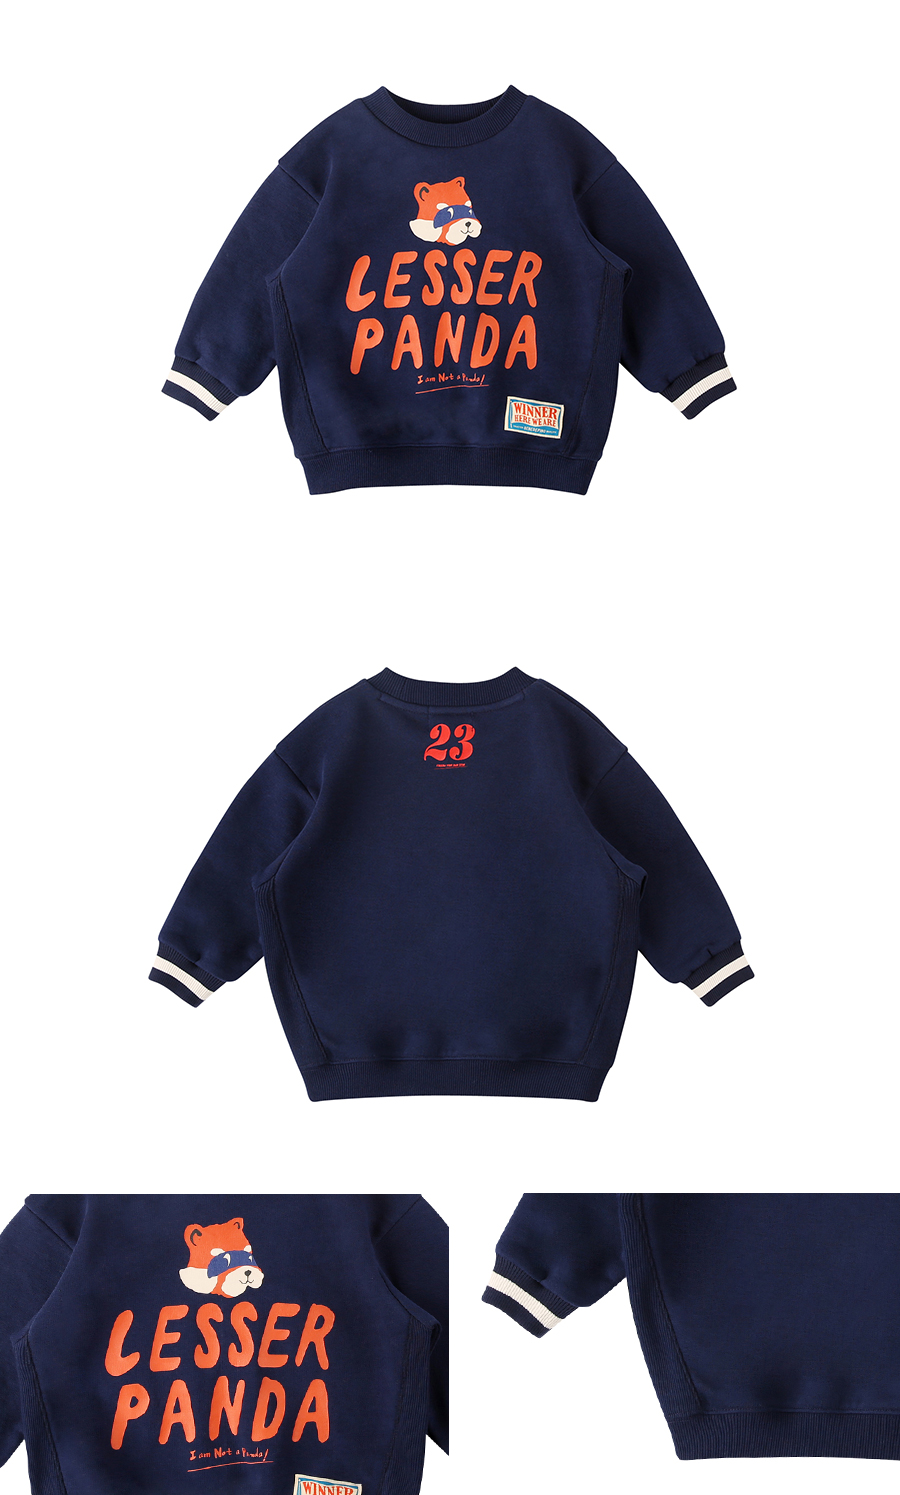 Lesser panda baby loose fit sweatshirt 상세 이미지